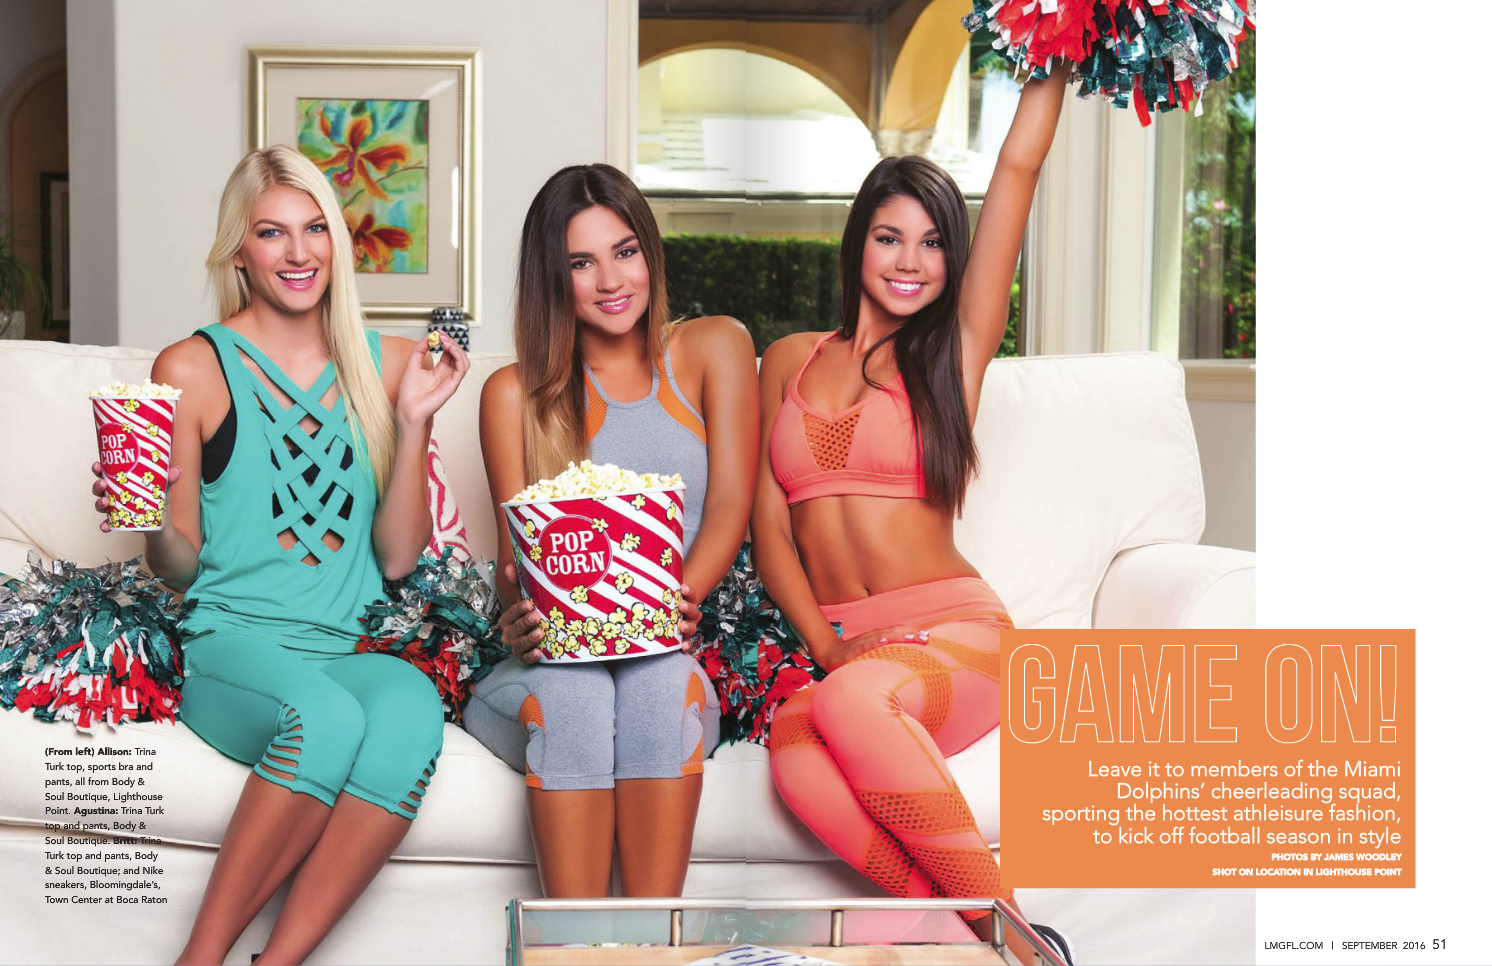 Las Olas Lifestyle Magazine - Miami Dolphins Cheerleaders - Cover shoot - Interior 1